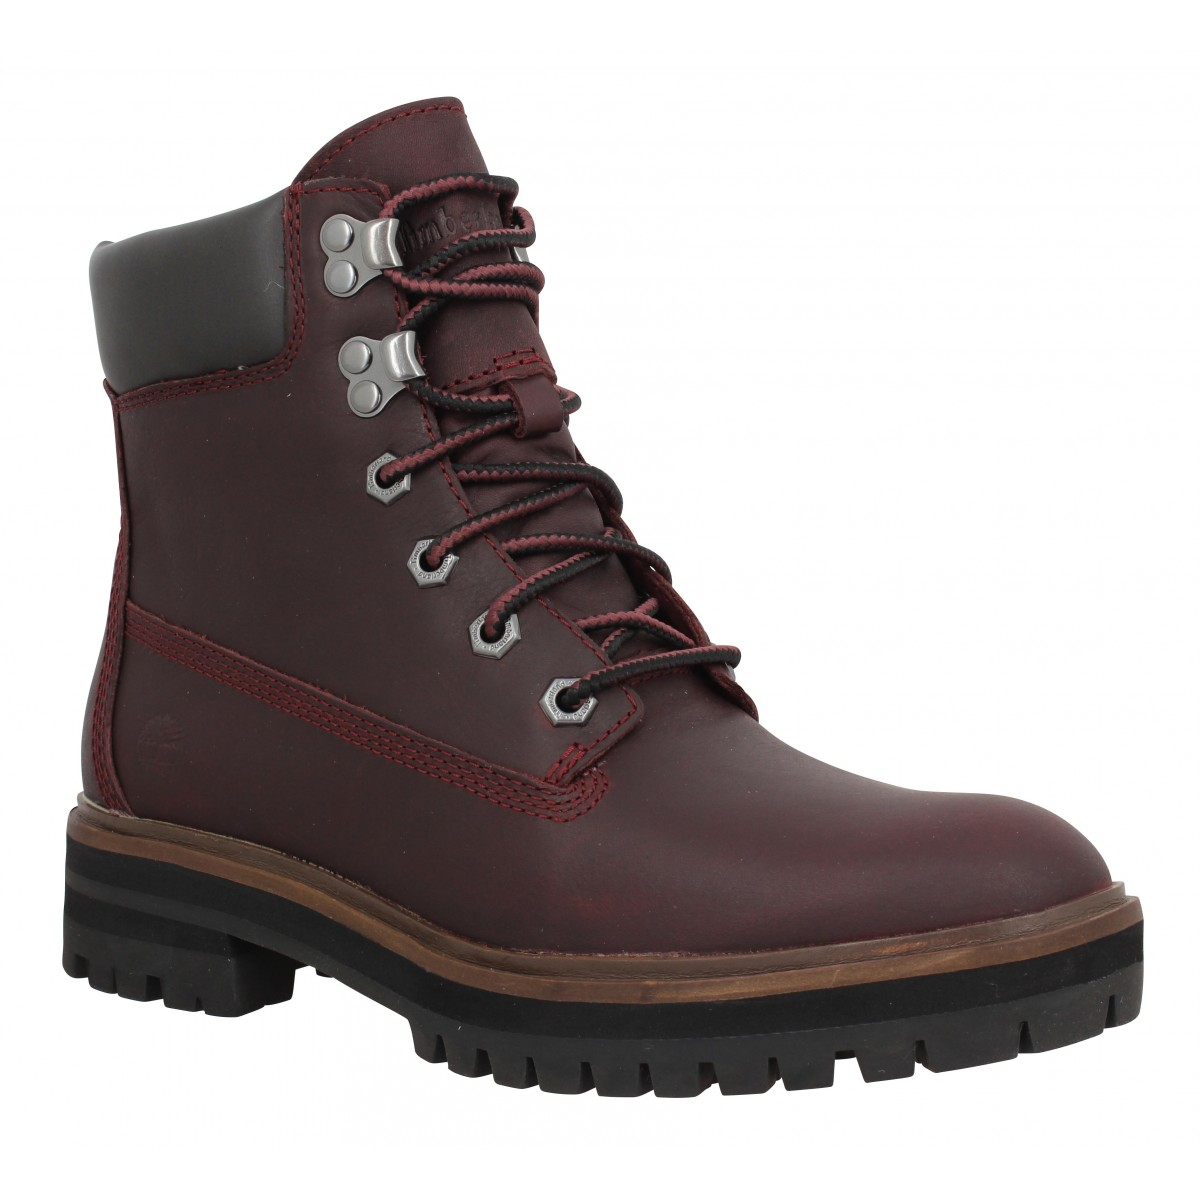 Bottines TIMBERLAND London Square 6in cuir Femme Bordeaux